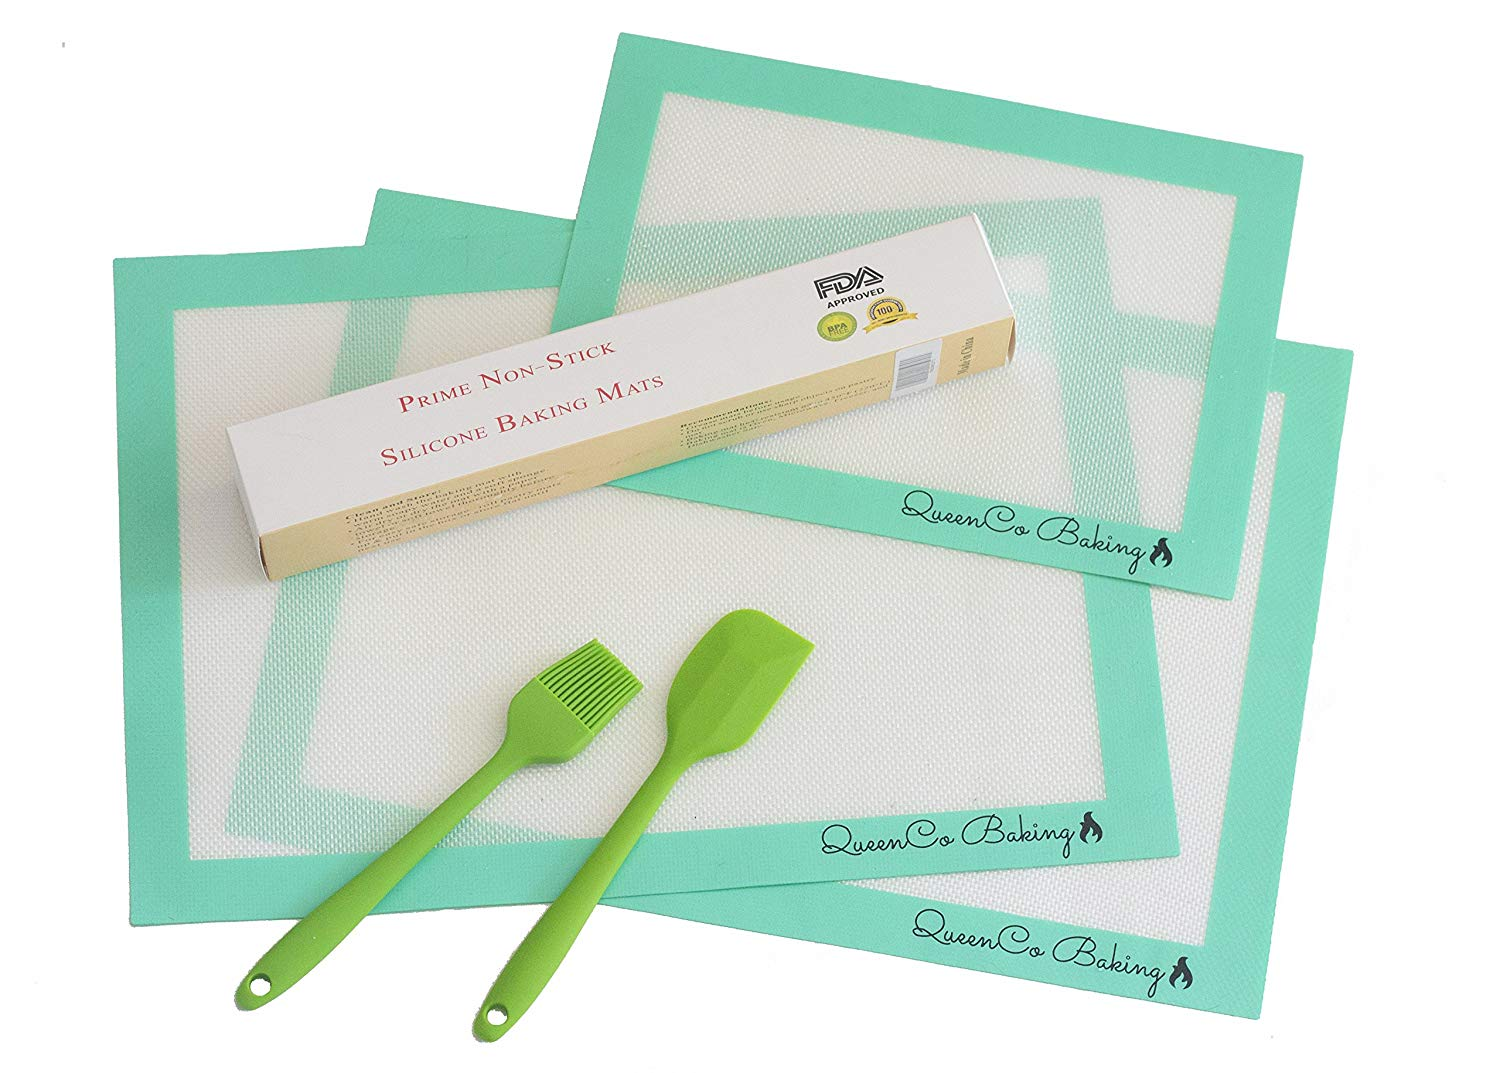 Silicone Baking Mats Non-Stick Set of 3 Heat Resistance Mats 2 Large (16.5x11.6) & 1 Small (11.8x8.3) With Spatula & Brush, Professional Quality Liner For Baking Sheets & Rolling, Teal